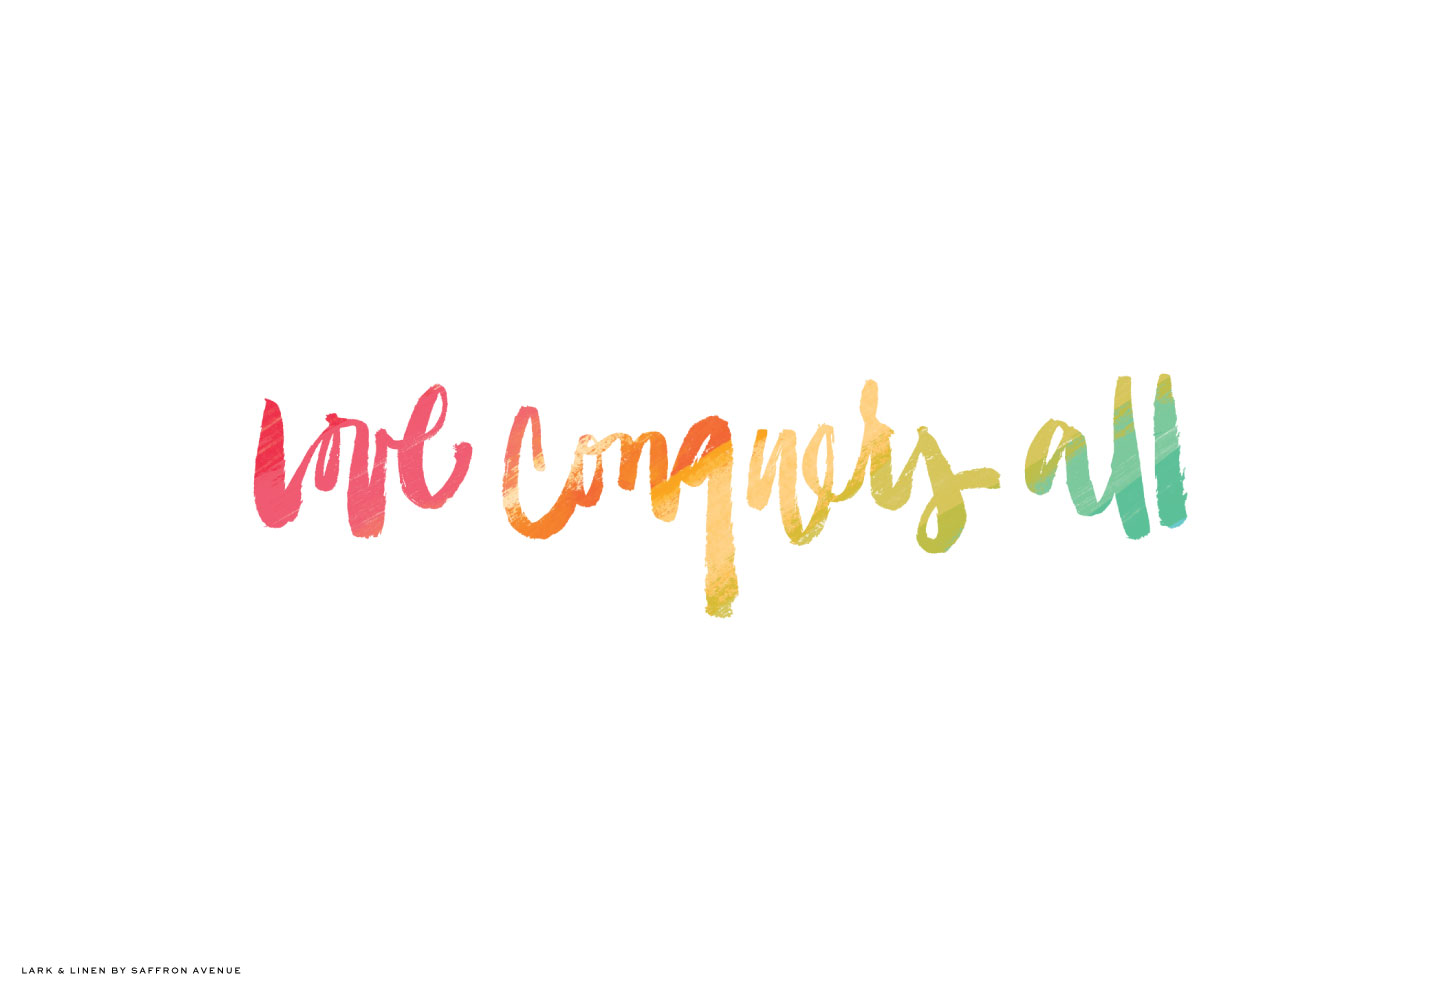 thesis about love conquers all Access to over 100,000 complete essays and term papers love conquers all is the theme that stuck out or why people feel love conquers all- manic love.